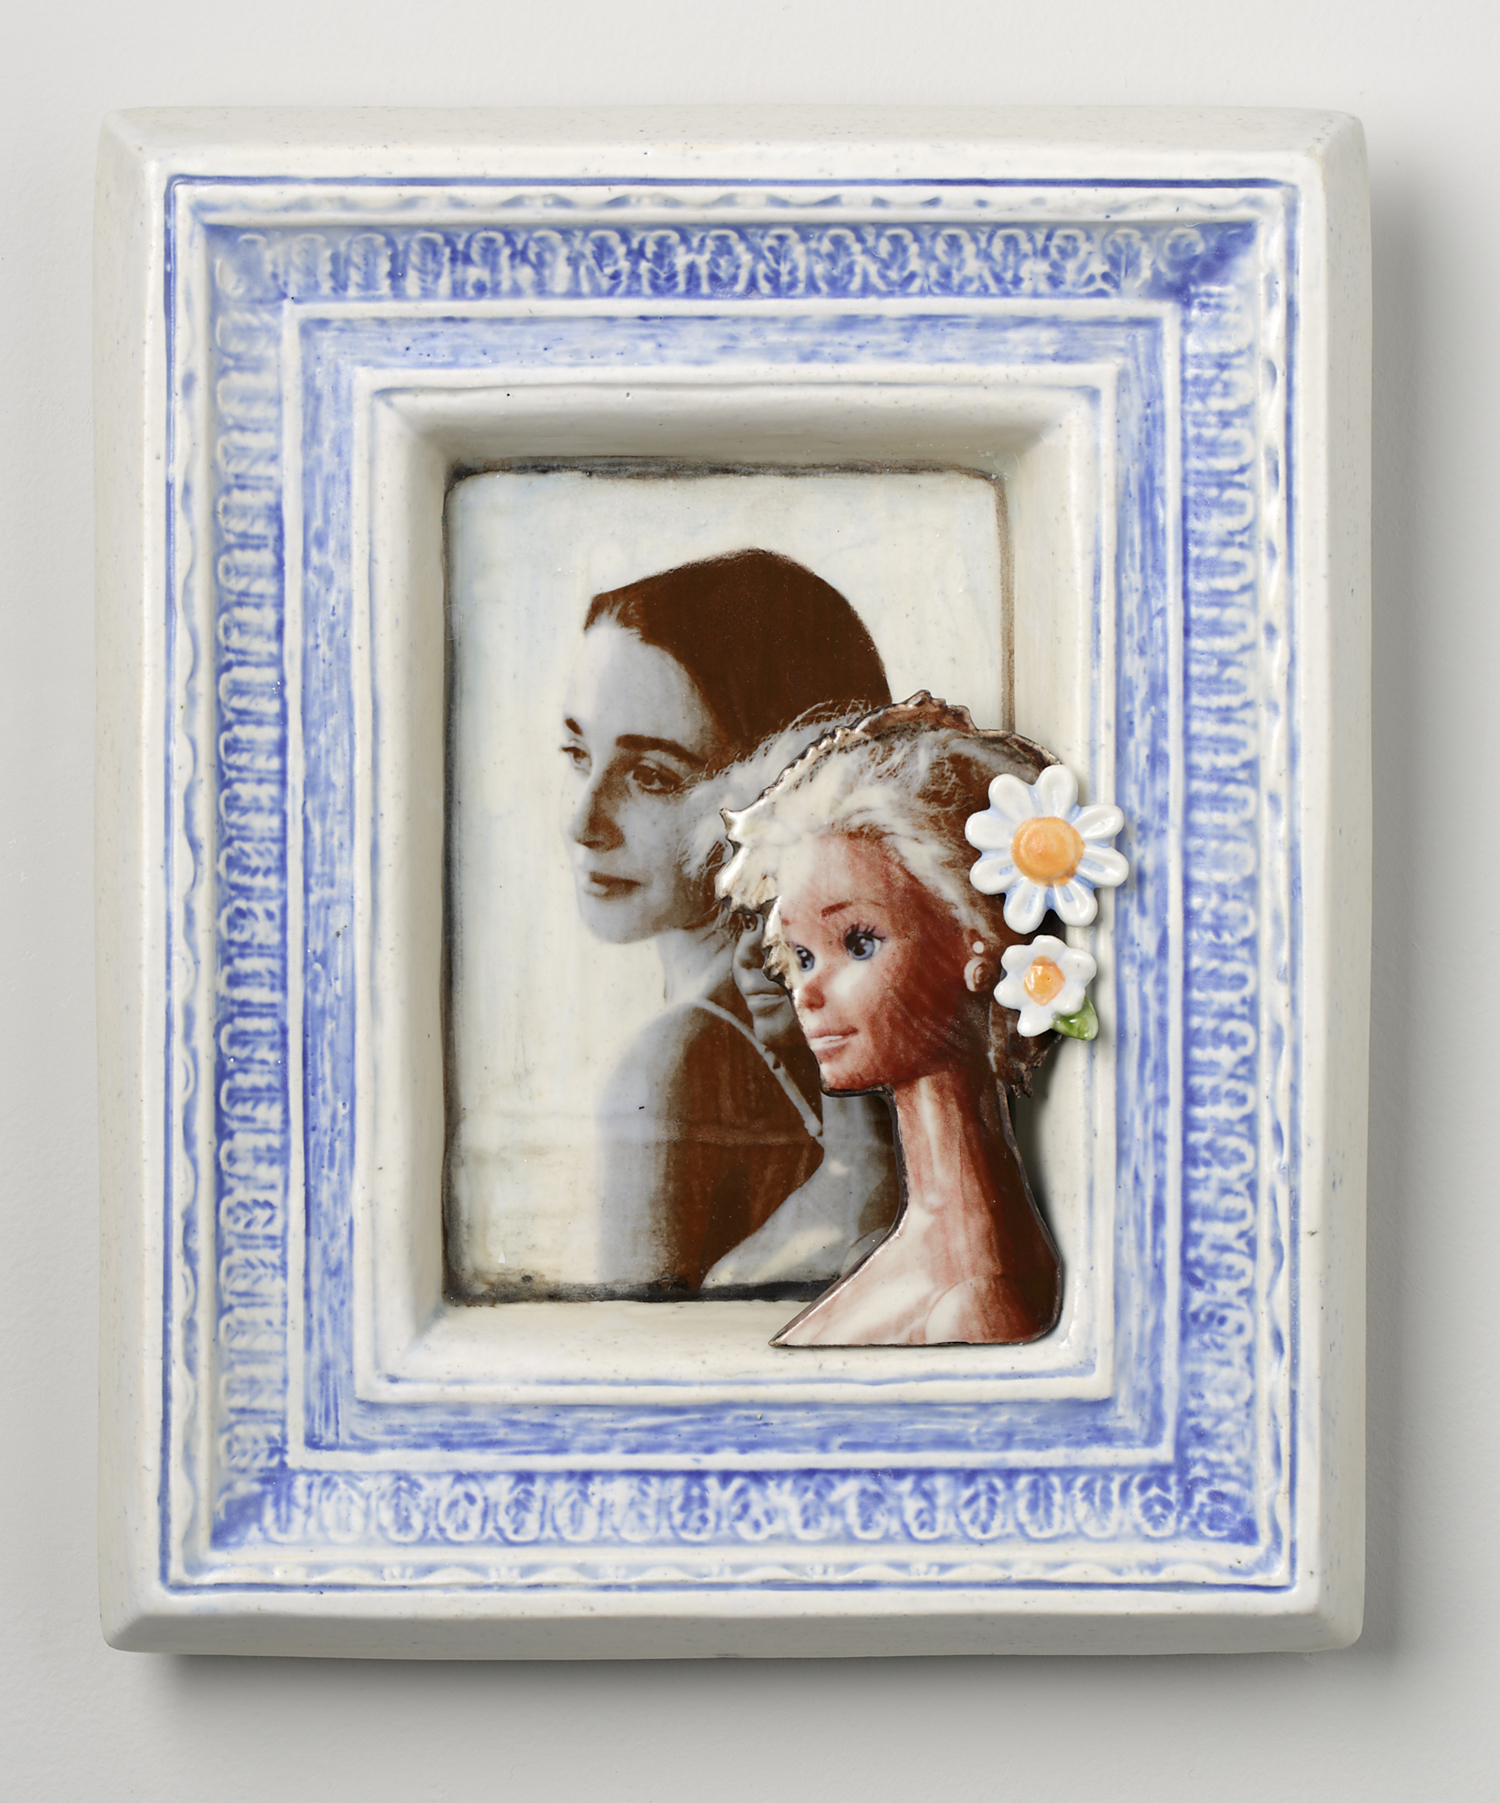 Portraits of girl and barbie in ceramic blue and white frame